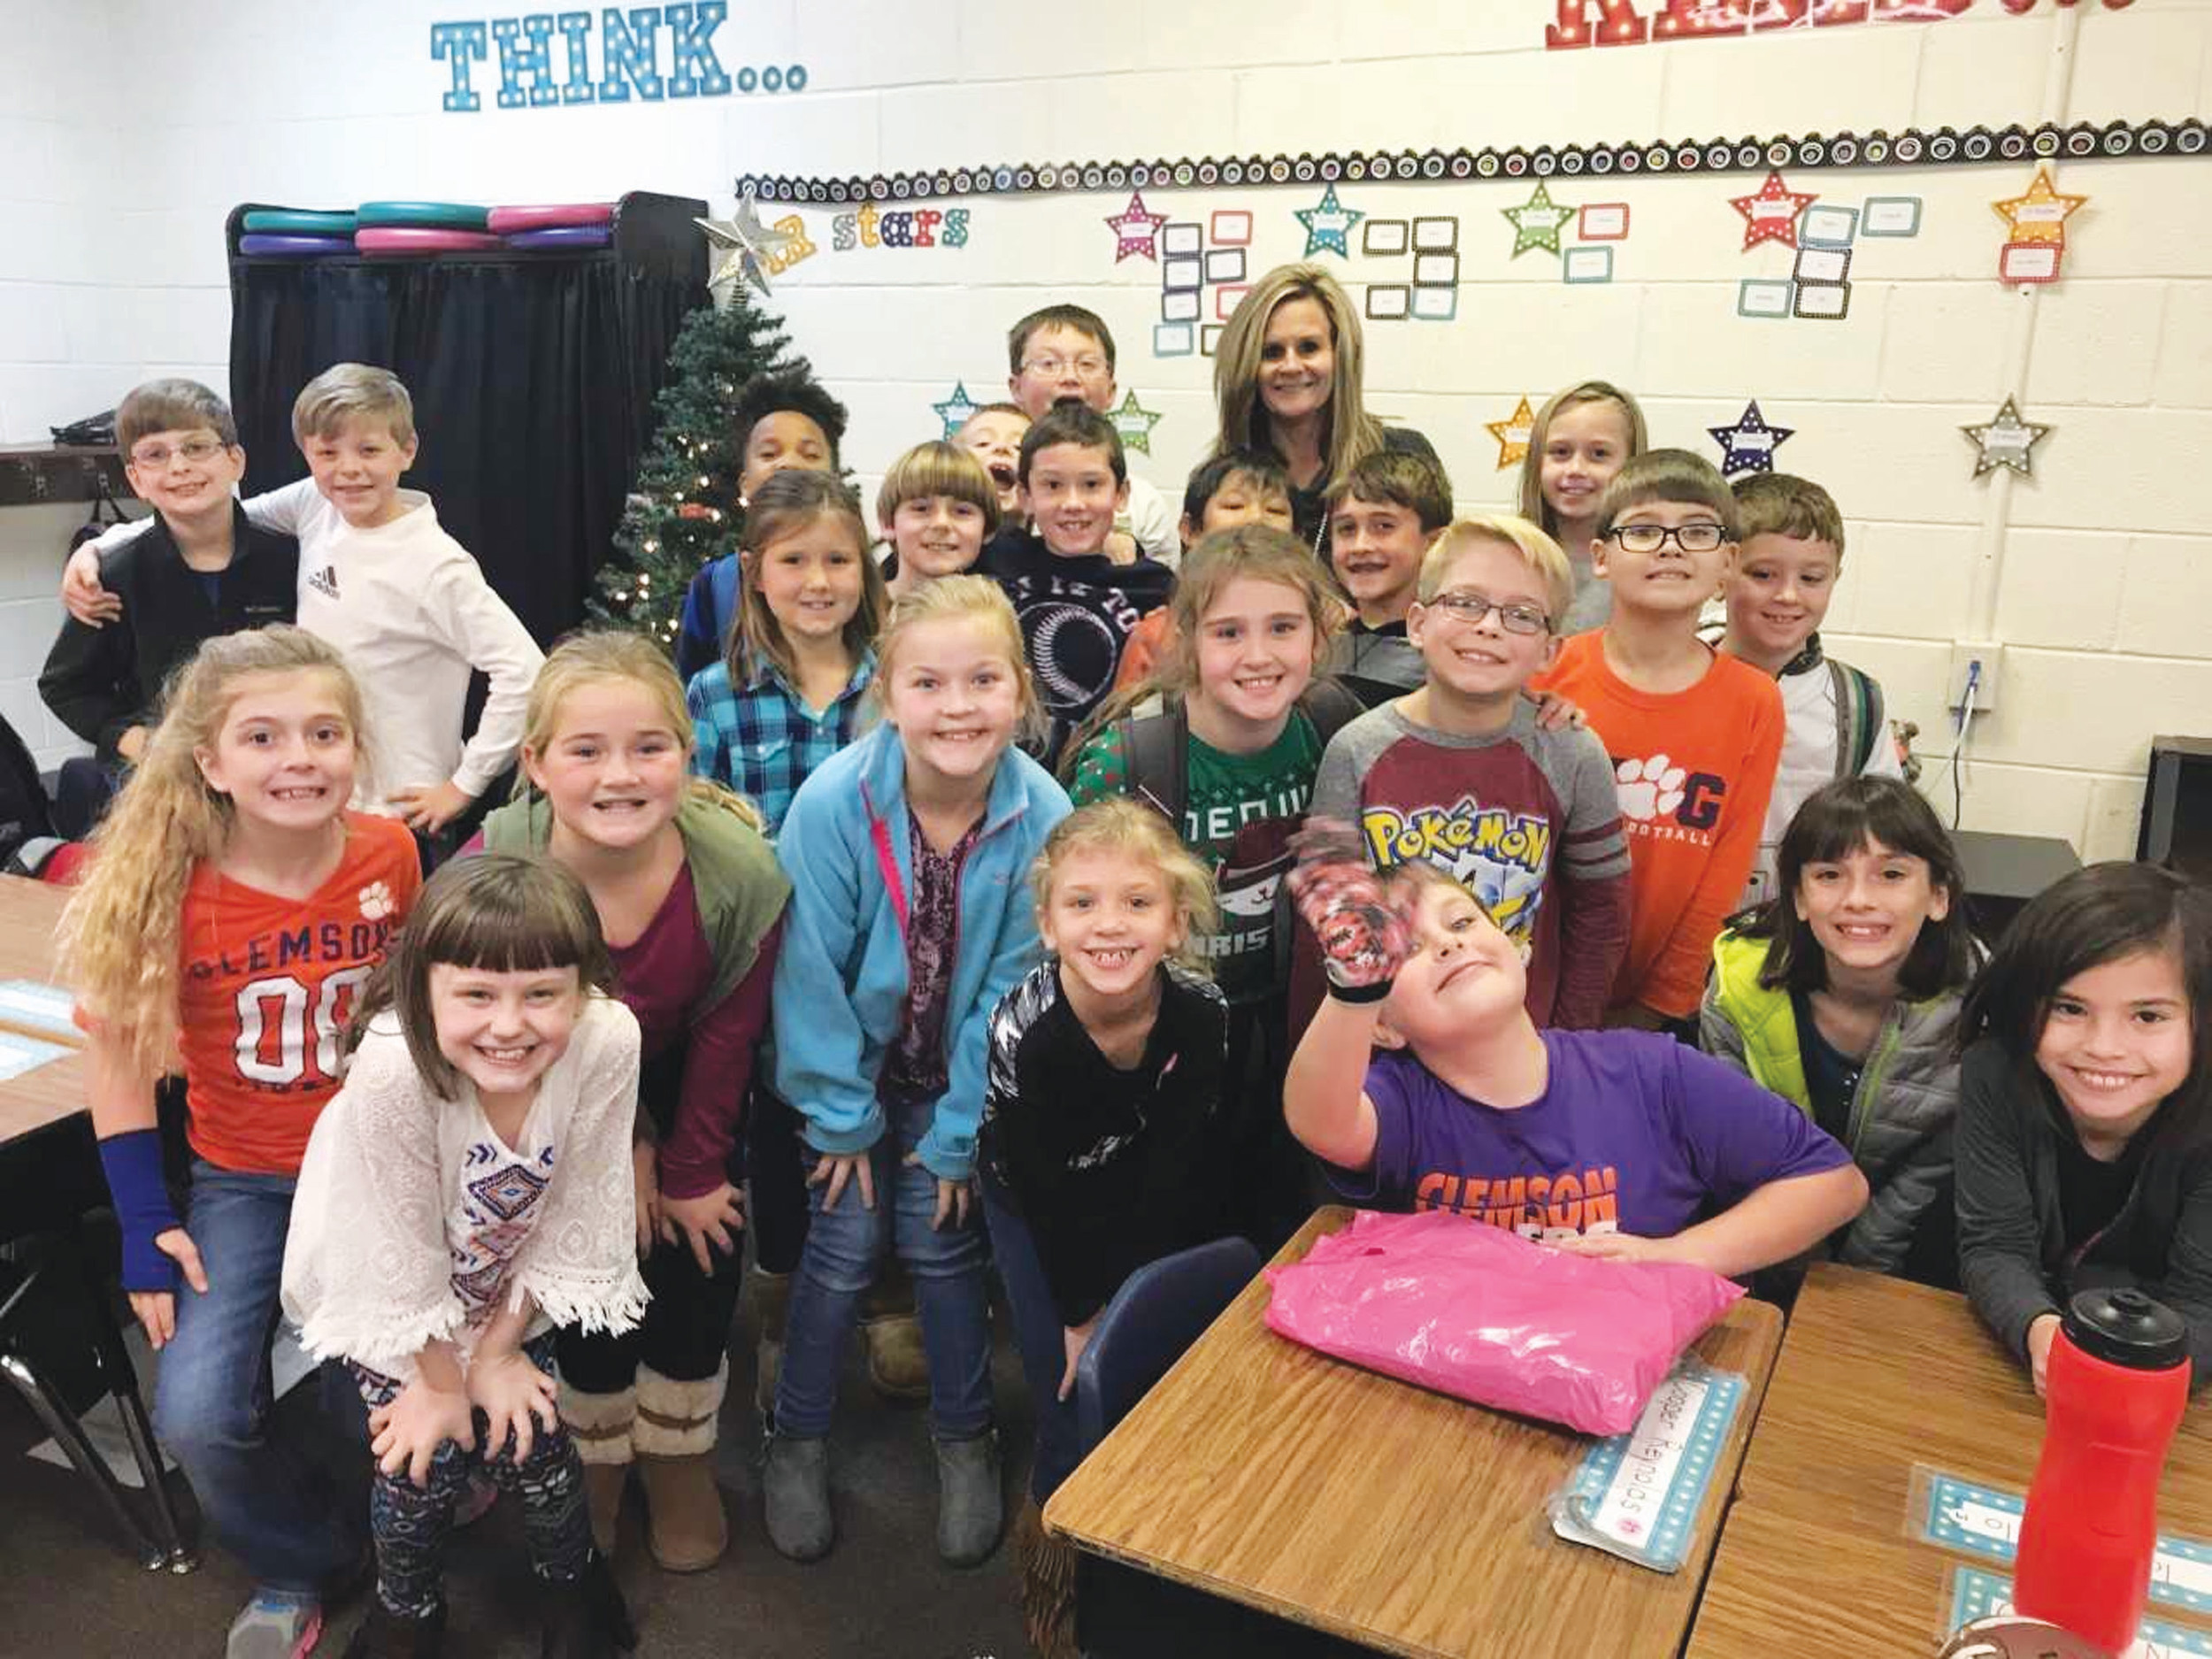 The South Carolina Department of Education has announced the winners of the 2017 Read Your Way to the Big Game Contest, a reading competition that promotes literacy in schools through the Gamecock and Tiger athletic programs. Meg Martin, a third-grade teacher at Laurence Manning Academy, was the recipient of $500 to use in her classroom.